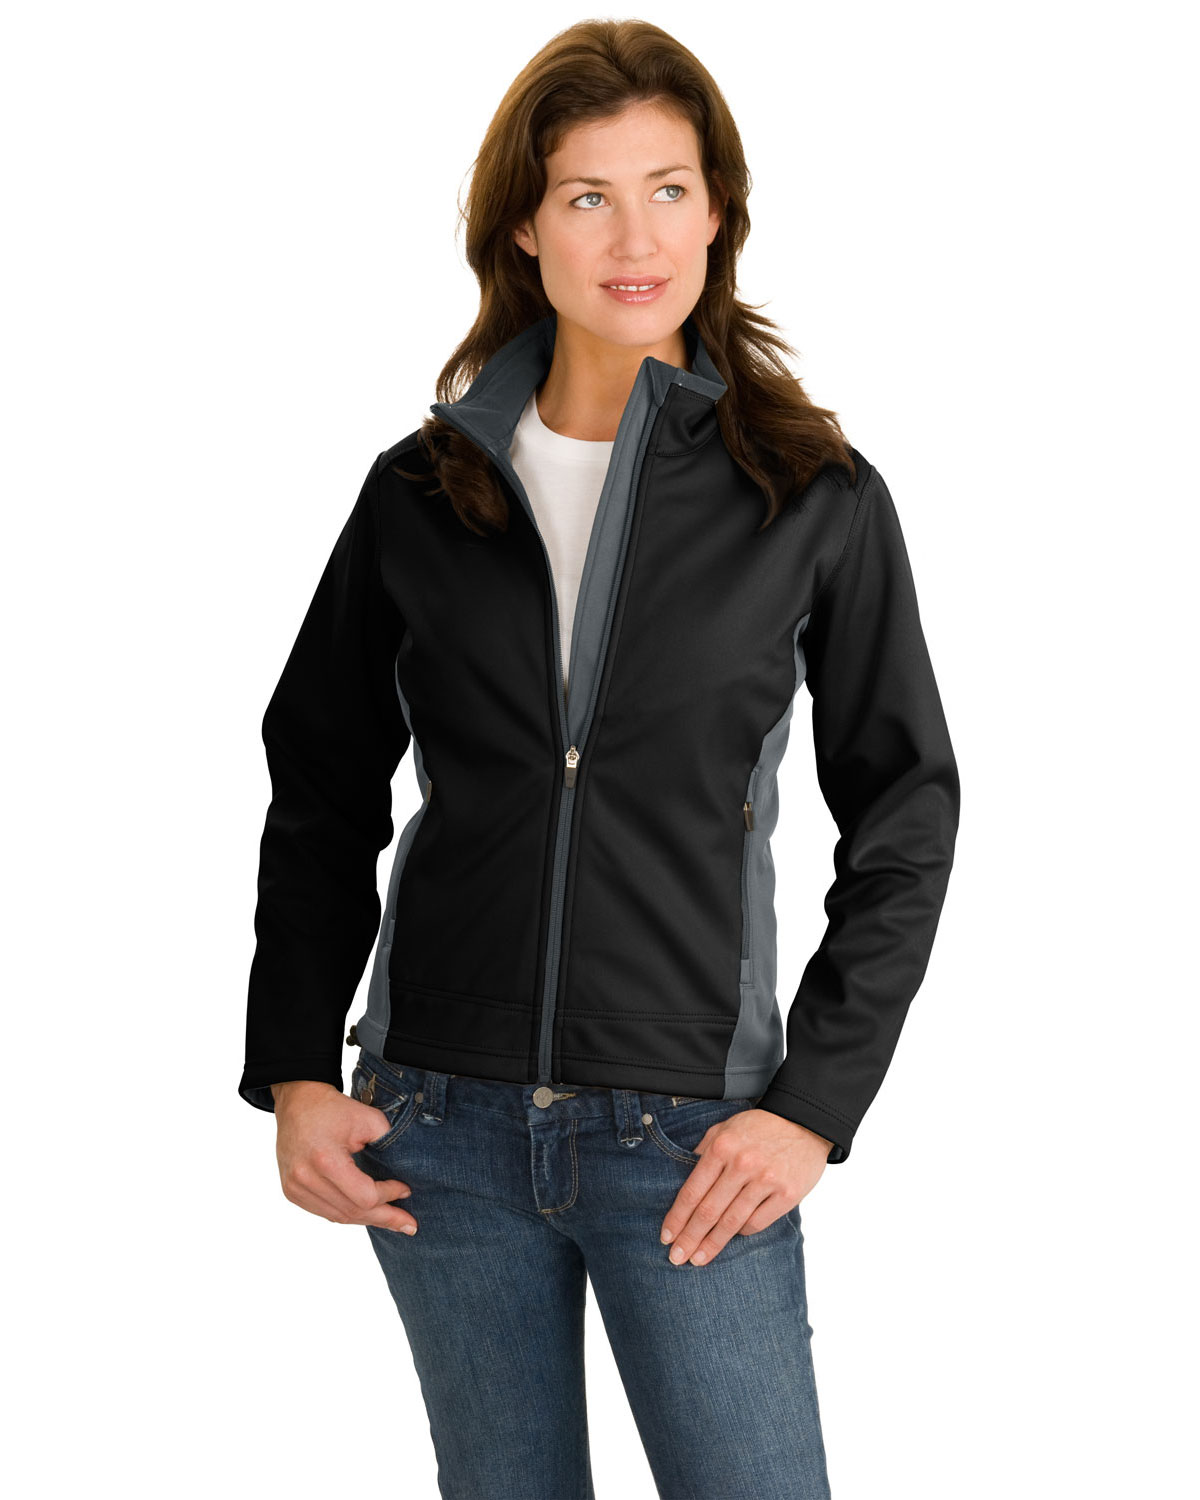 Port Authority L794 Women Two-Tone Soft Shell Jacket Black/Graphite at GotApparel